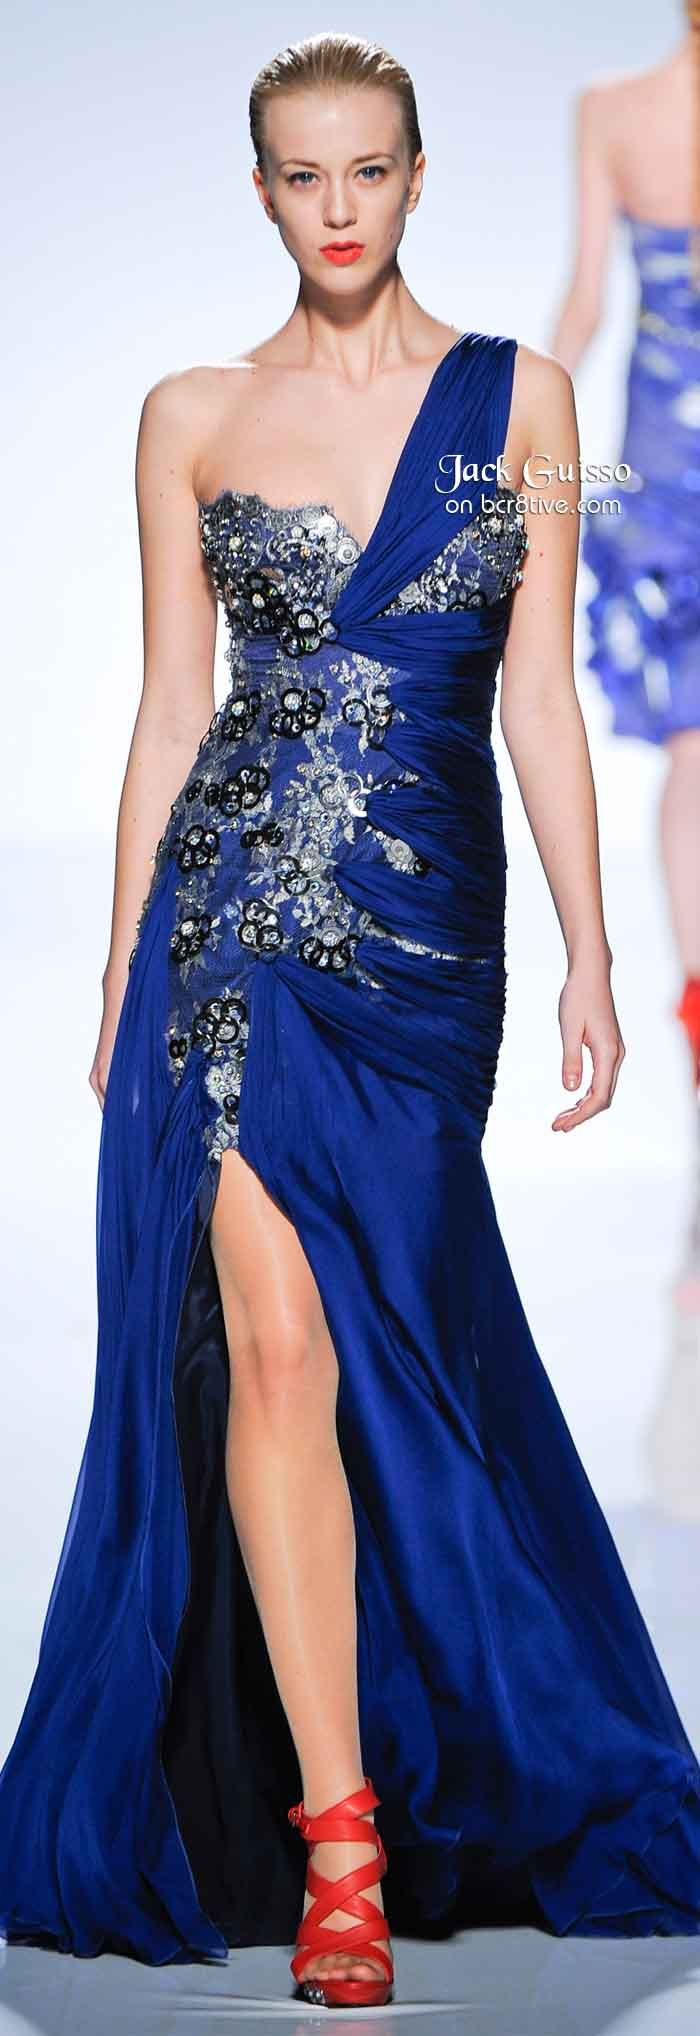 Jack Guisso Spring 2011 Couture